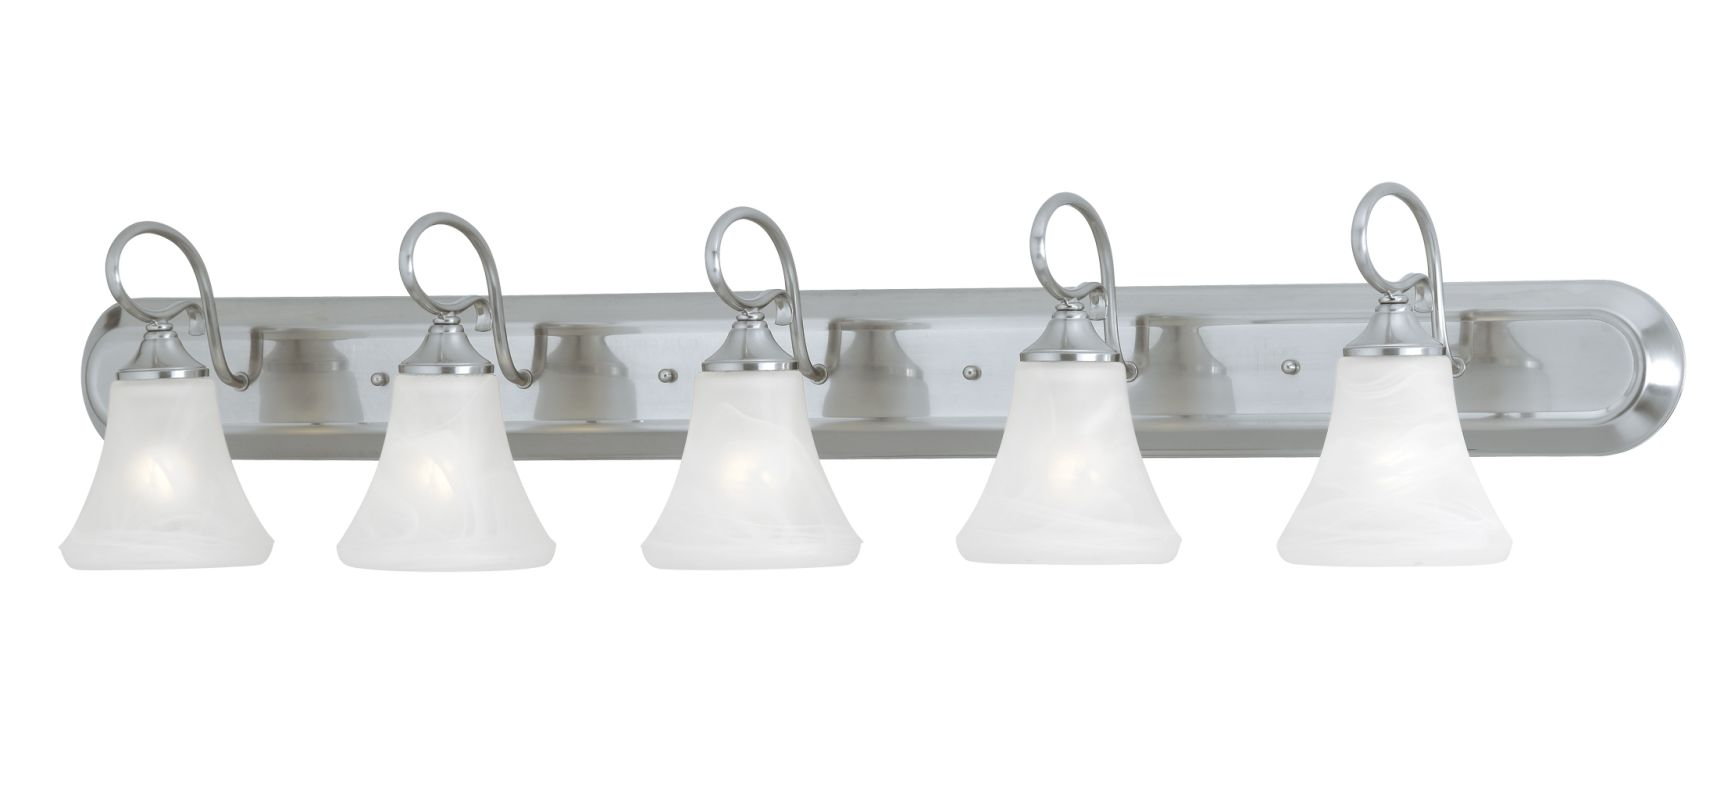 "Thomas Lighting SL7445 5 Light 48"" Wide Bathroom Fixture from the"